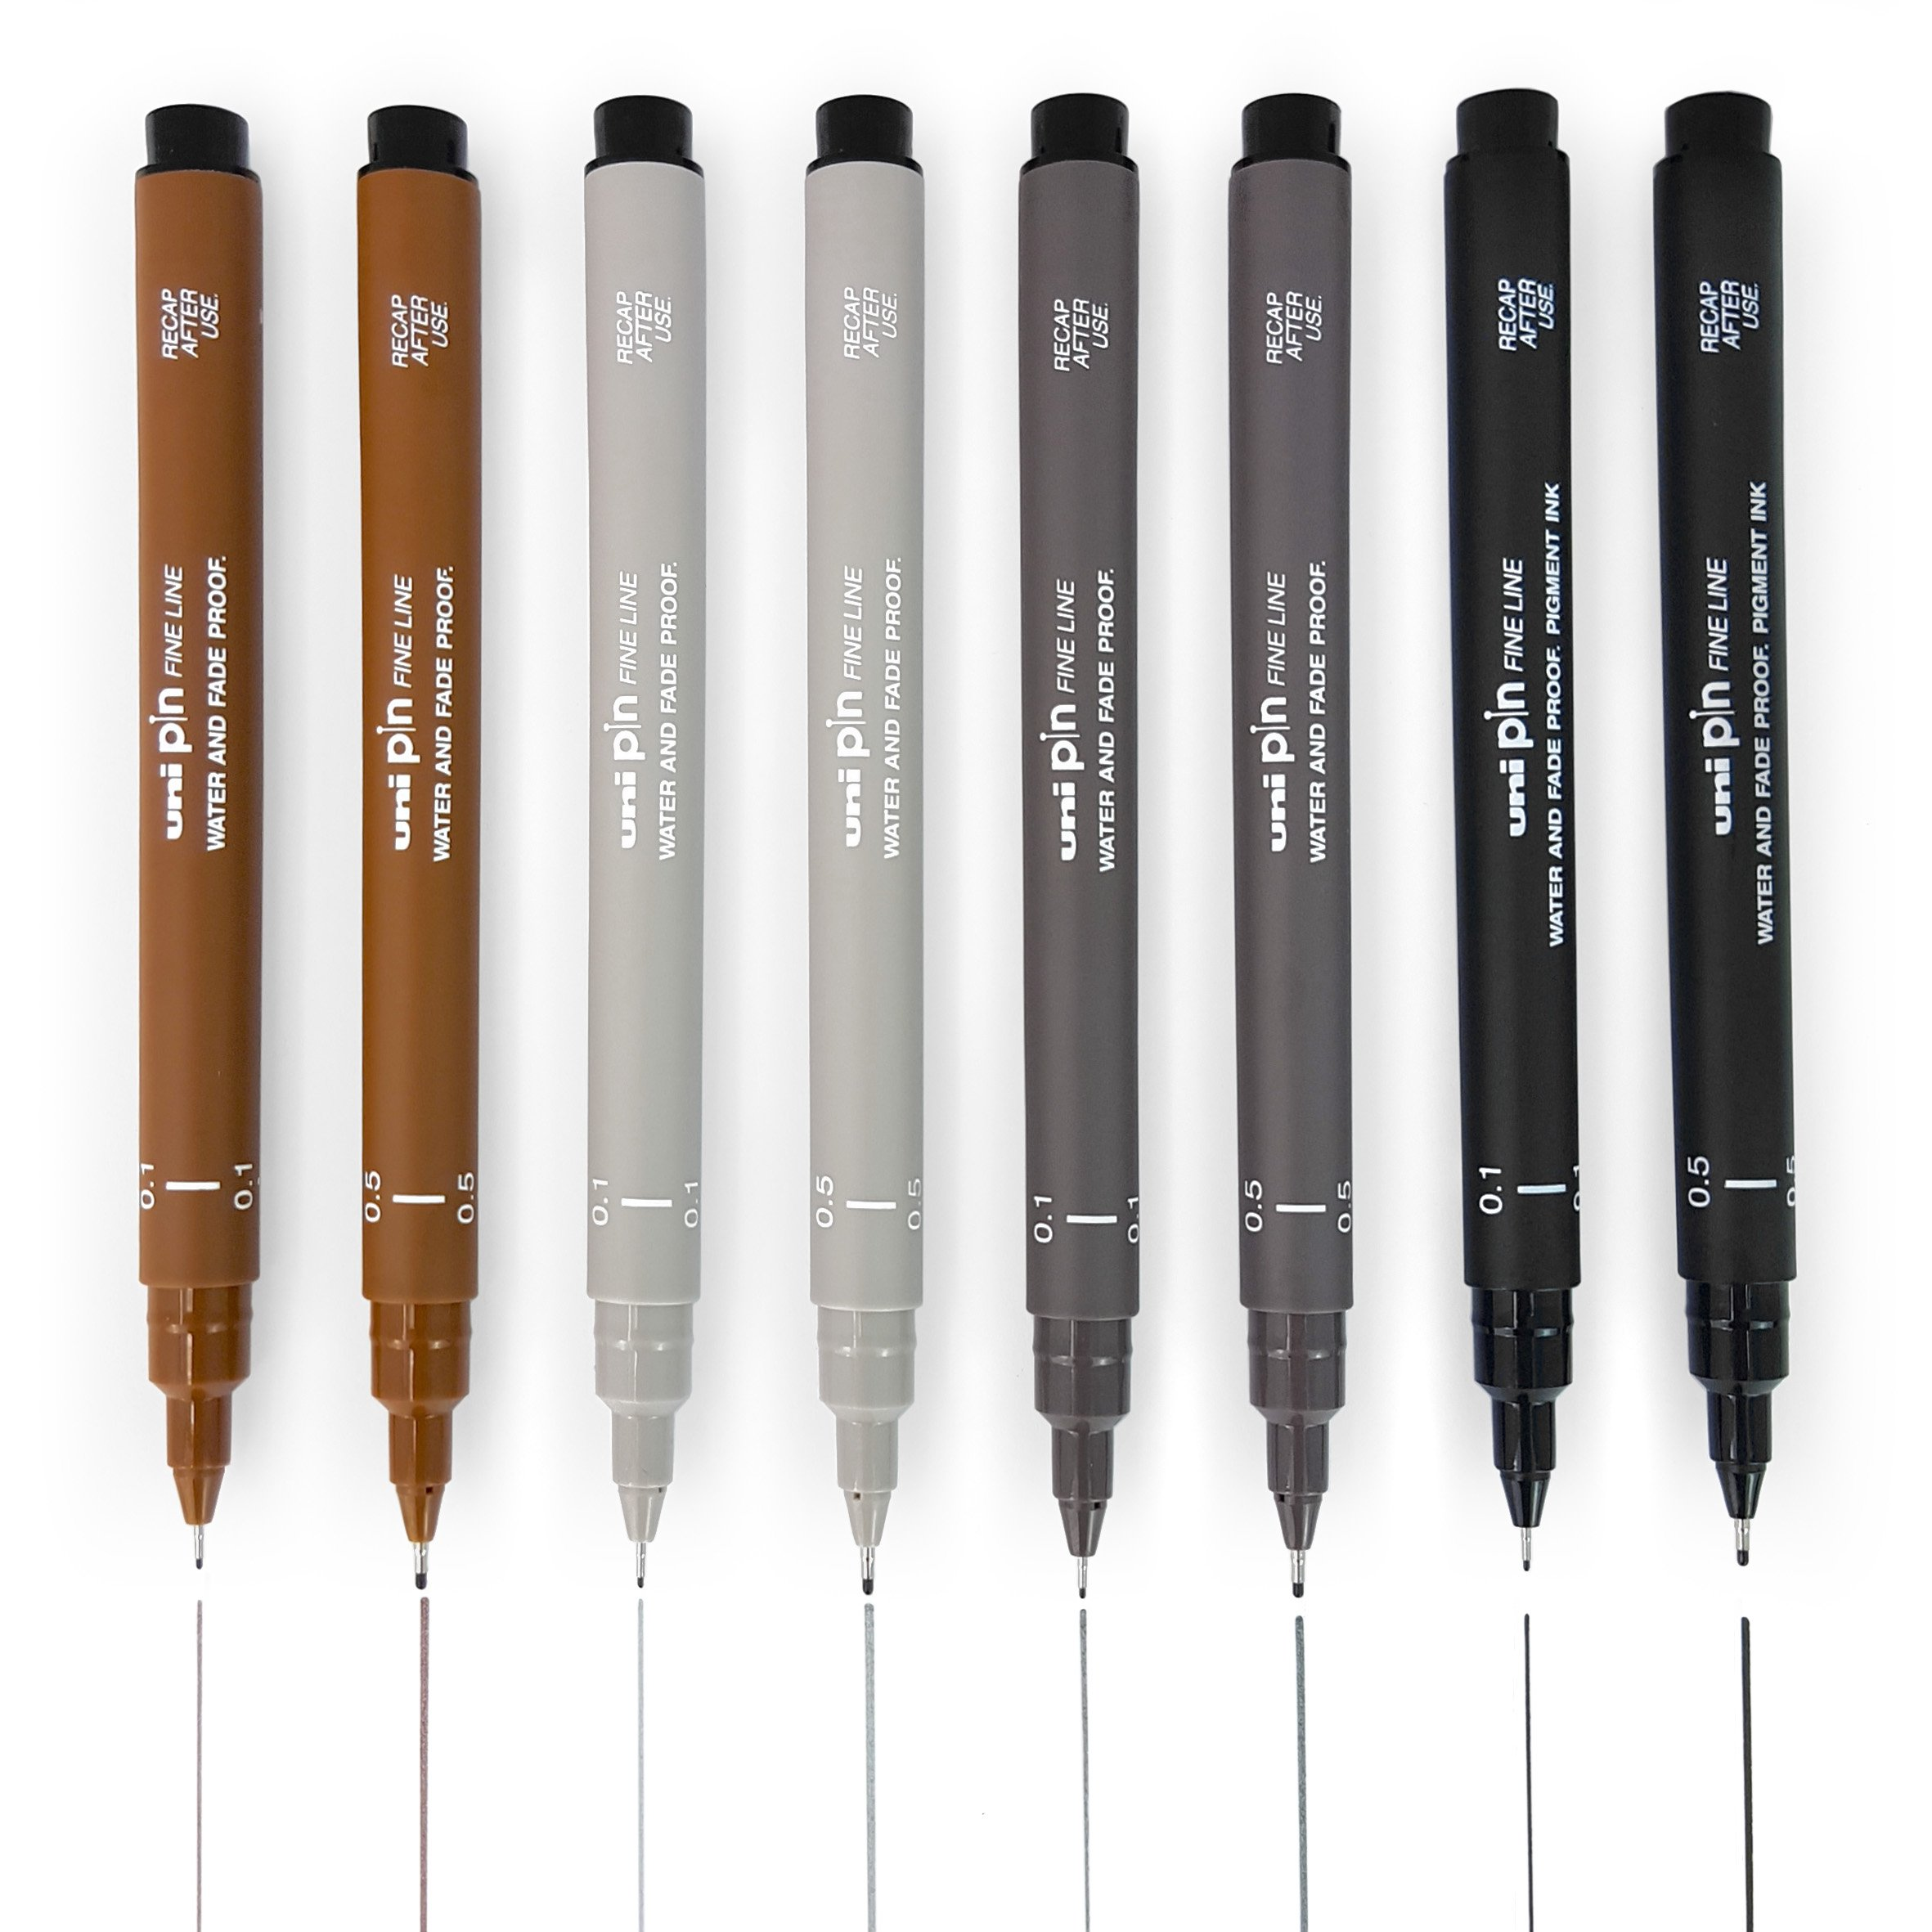 Uni Pin Fineliner Drawing Pen - Sketching Set of 8-0.1mm/0.5mm - Black, Dark Grey, Light Grey, and Sepia by Uni Pin